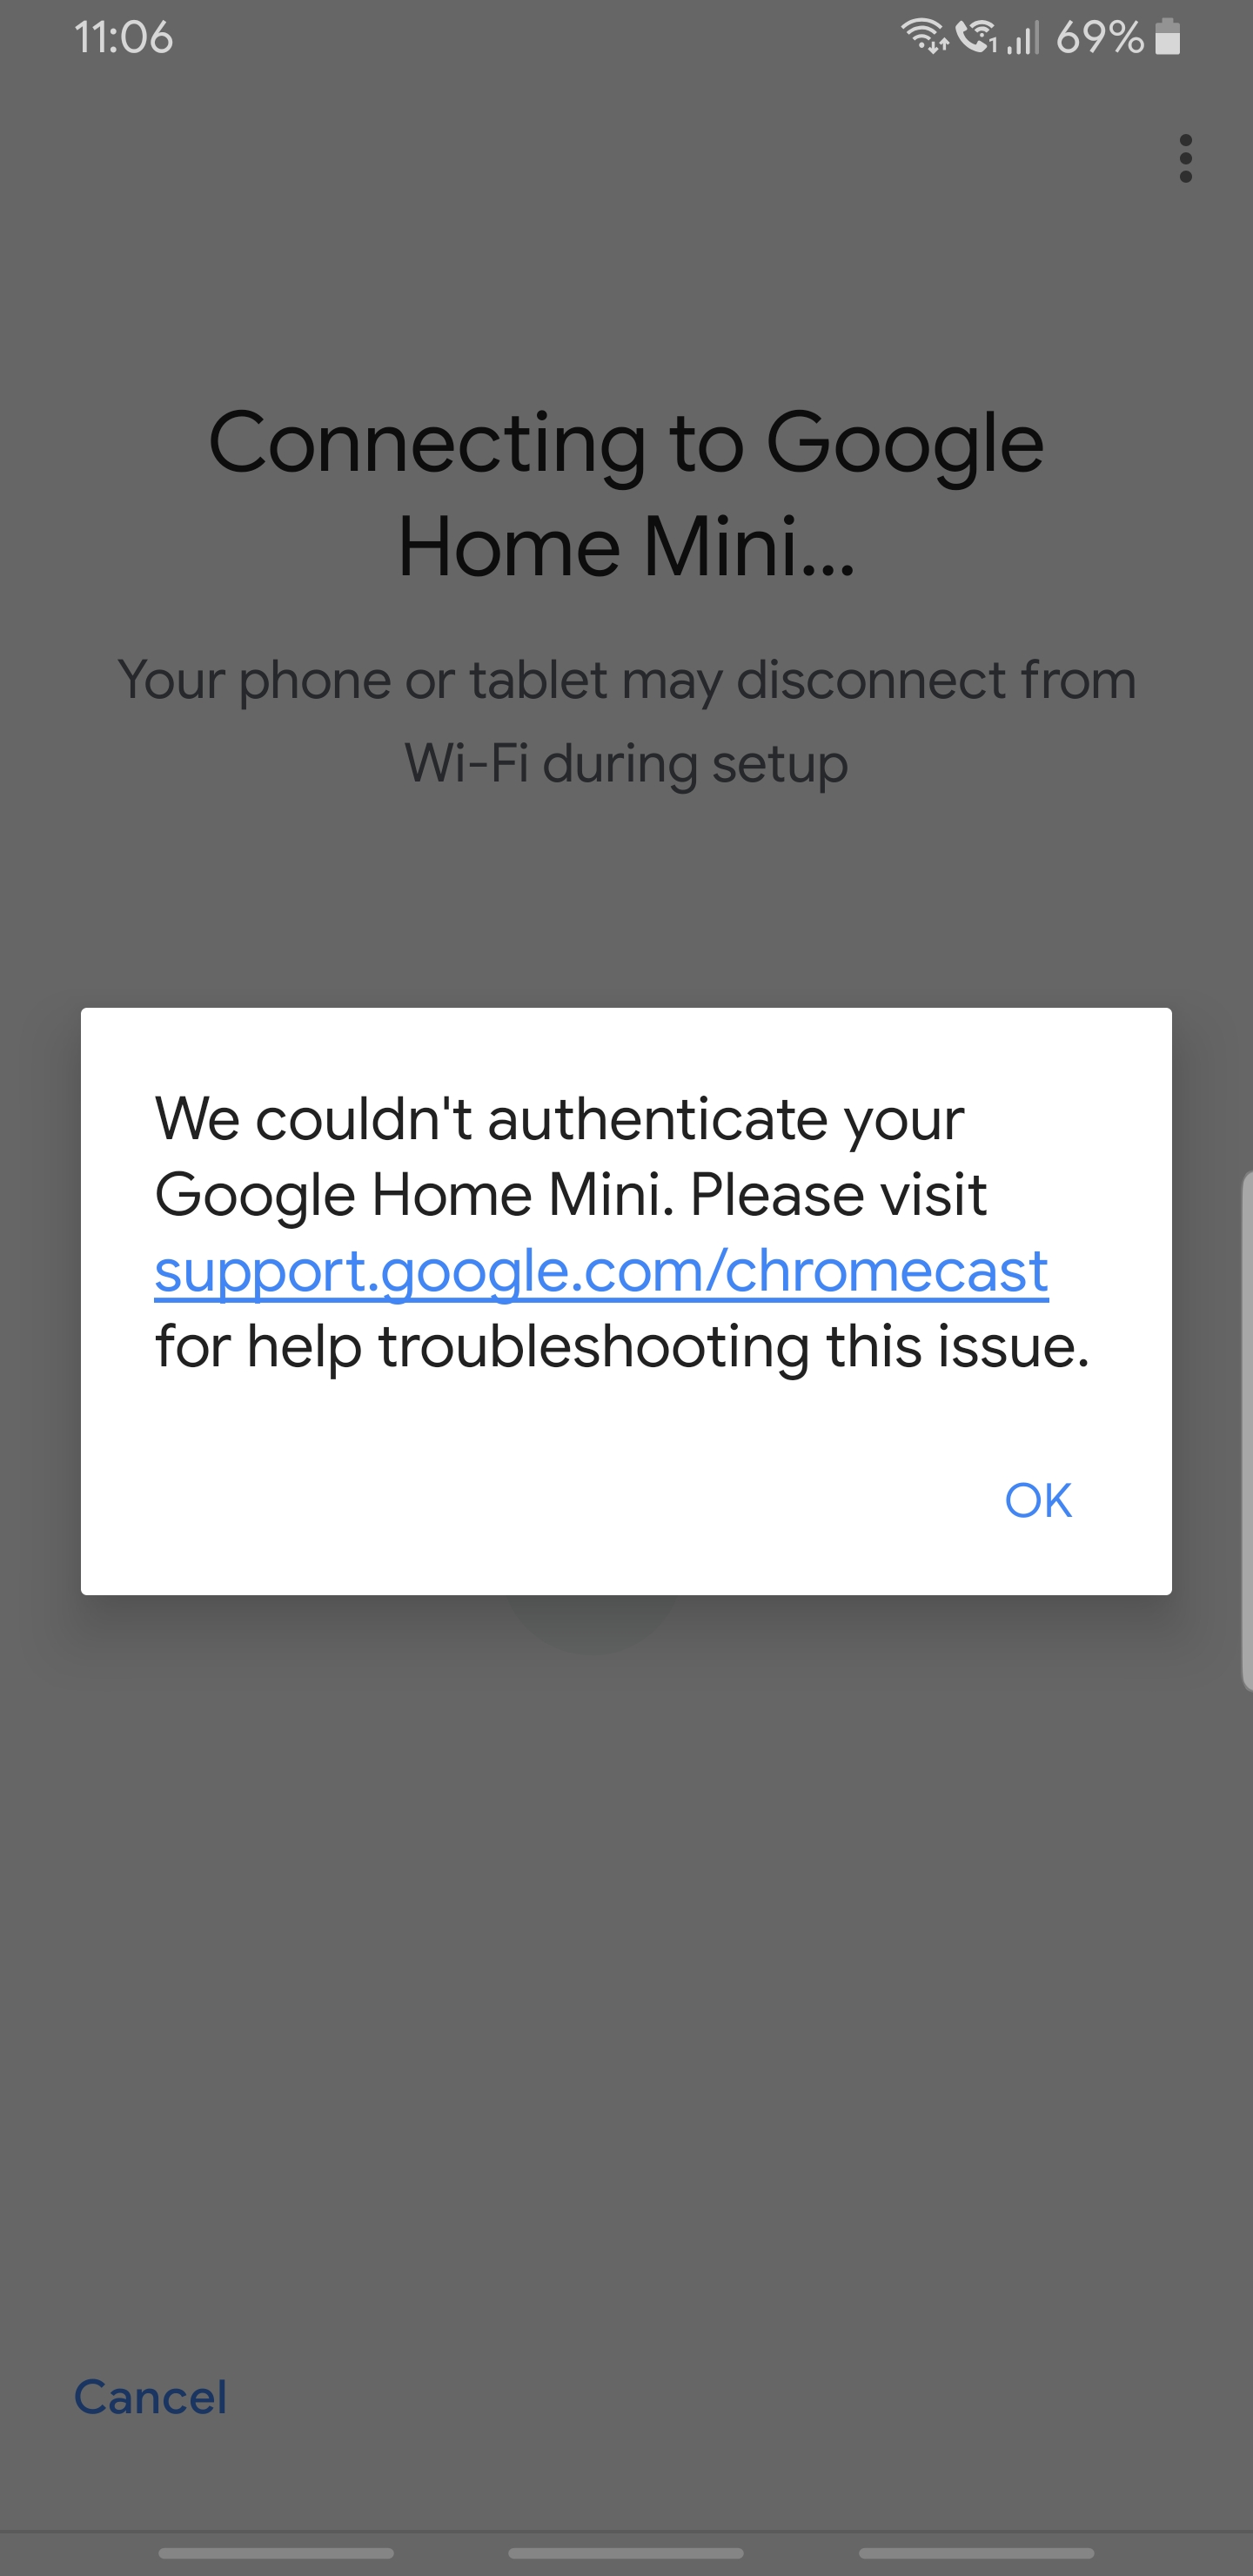 Unable to connect my Google Home Mini with a Samsung Galaxy